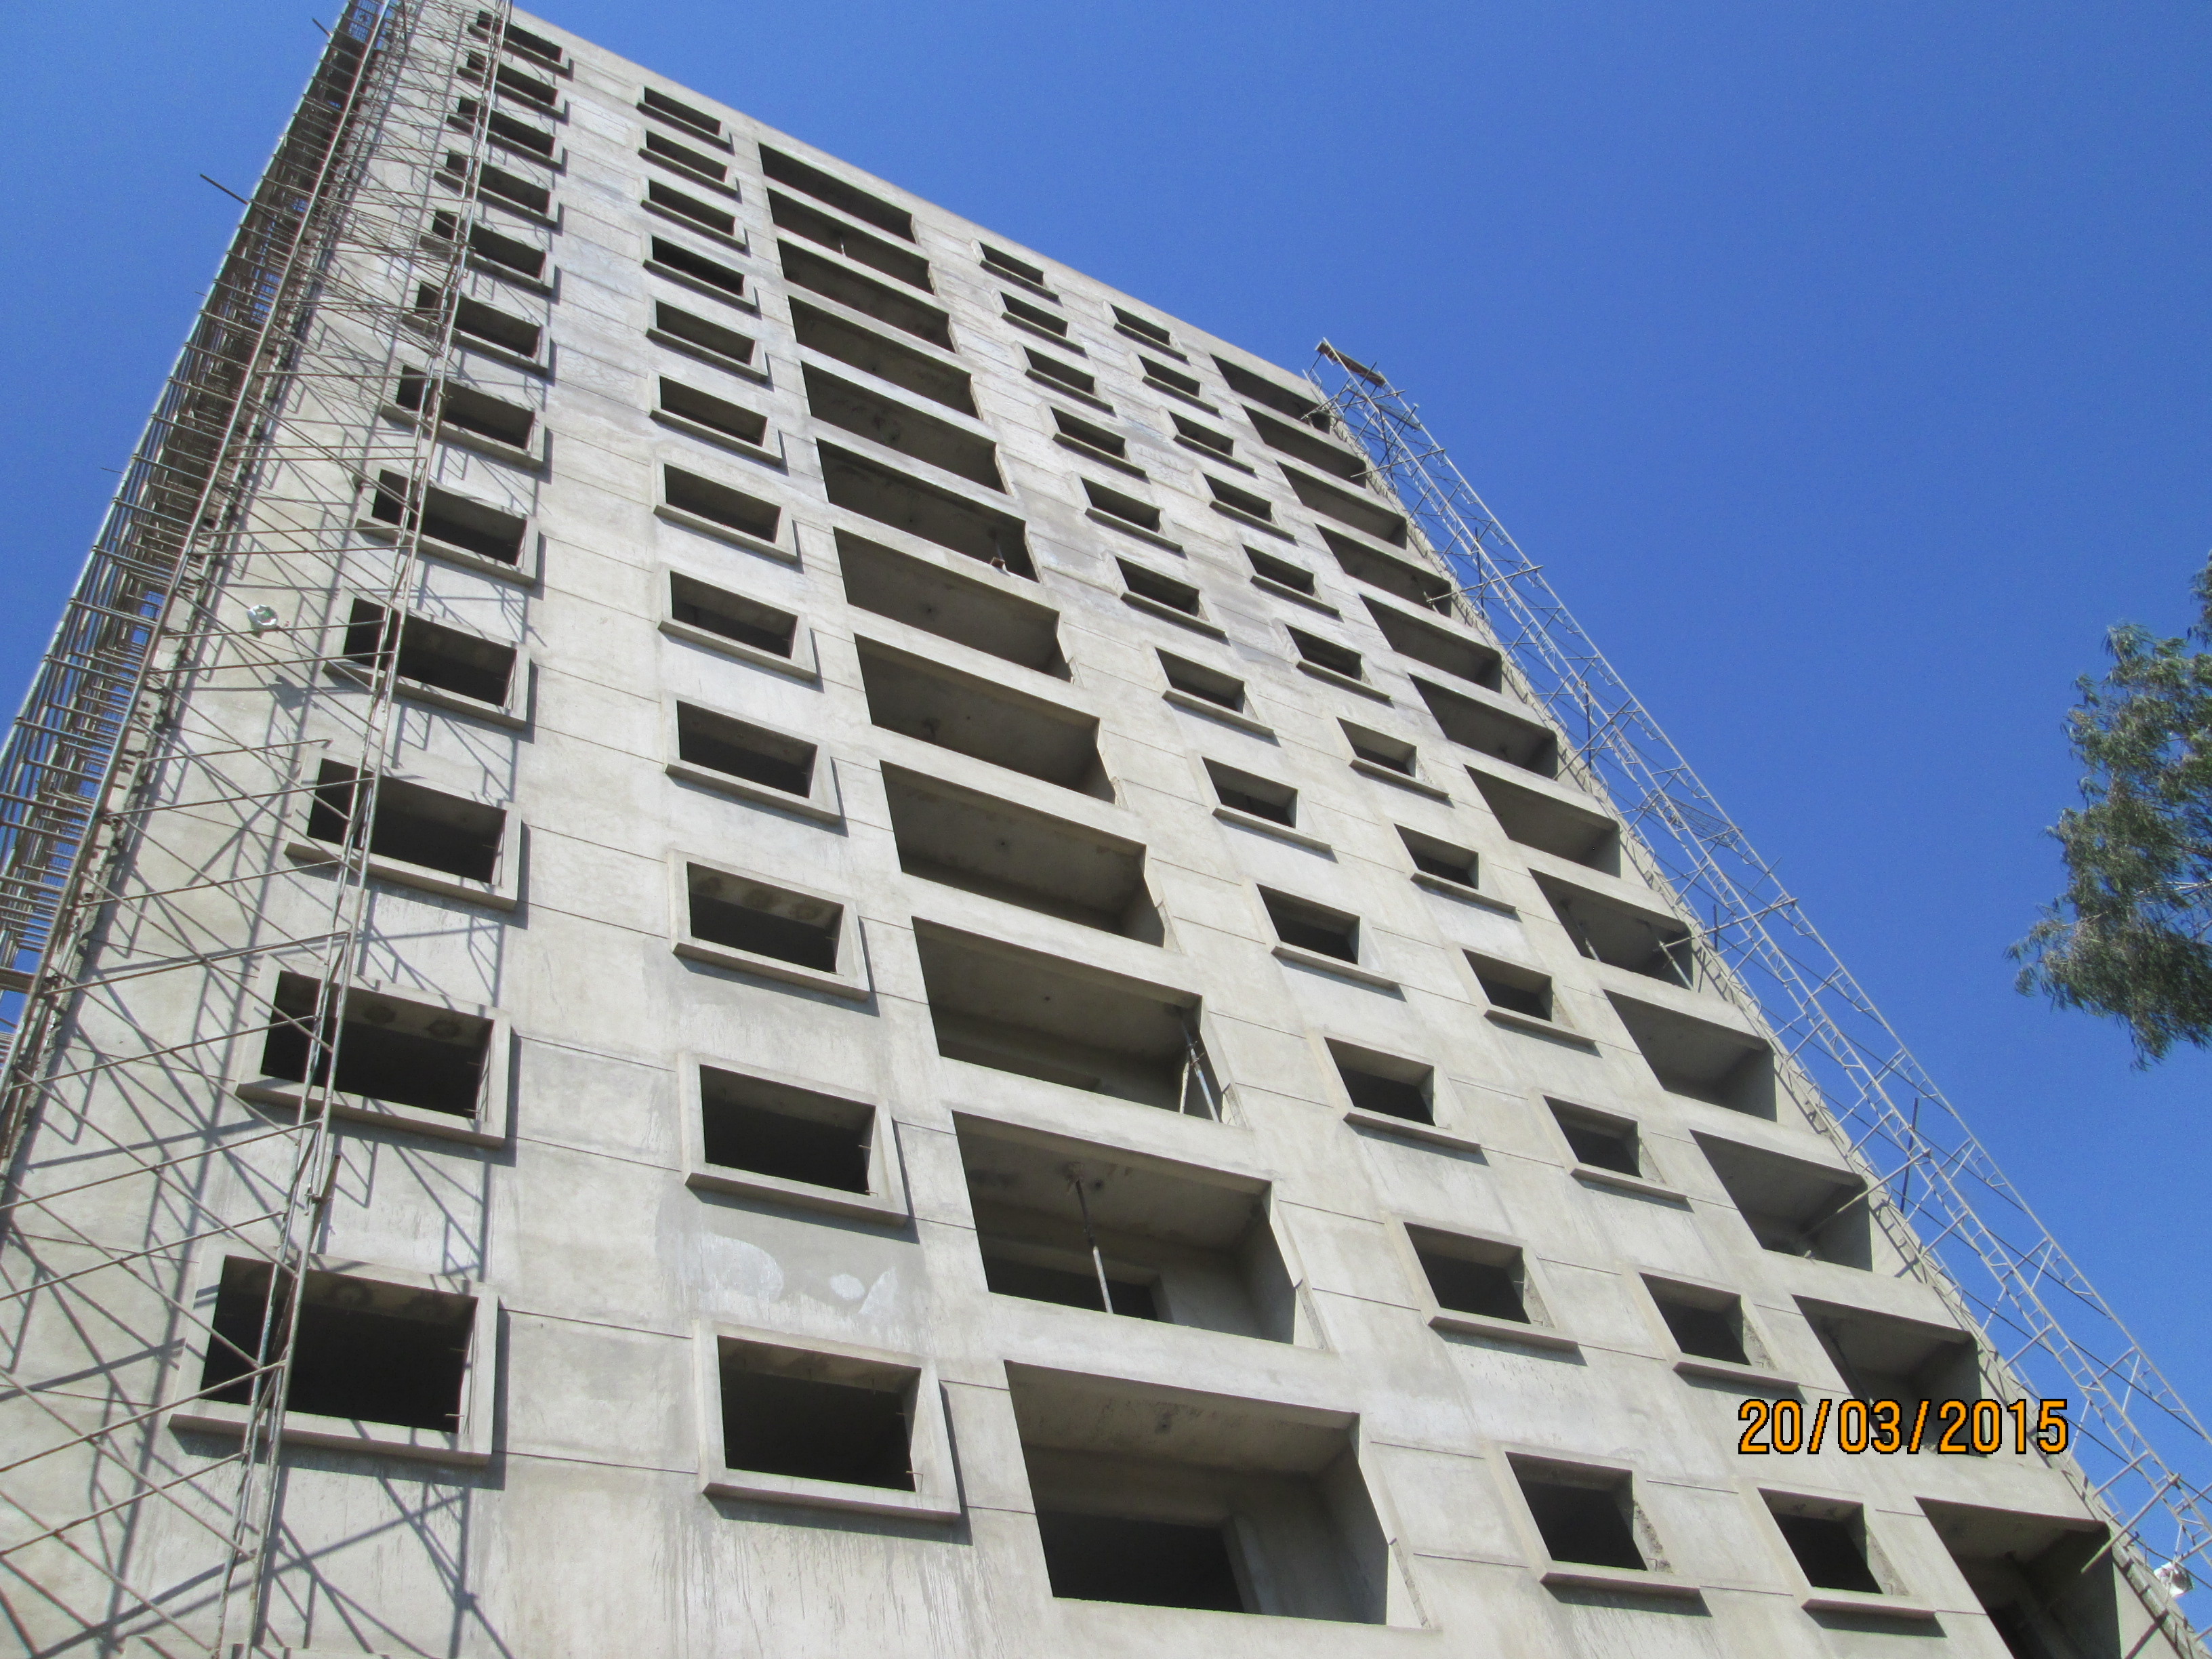 Valmark Aastha 3 BHK Residential Apartments Construction Image